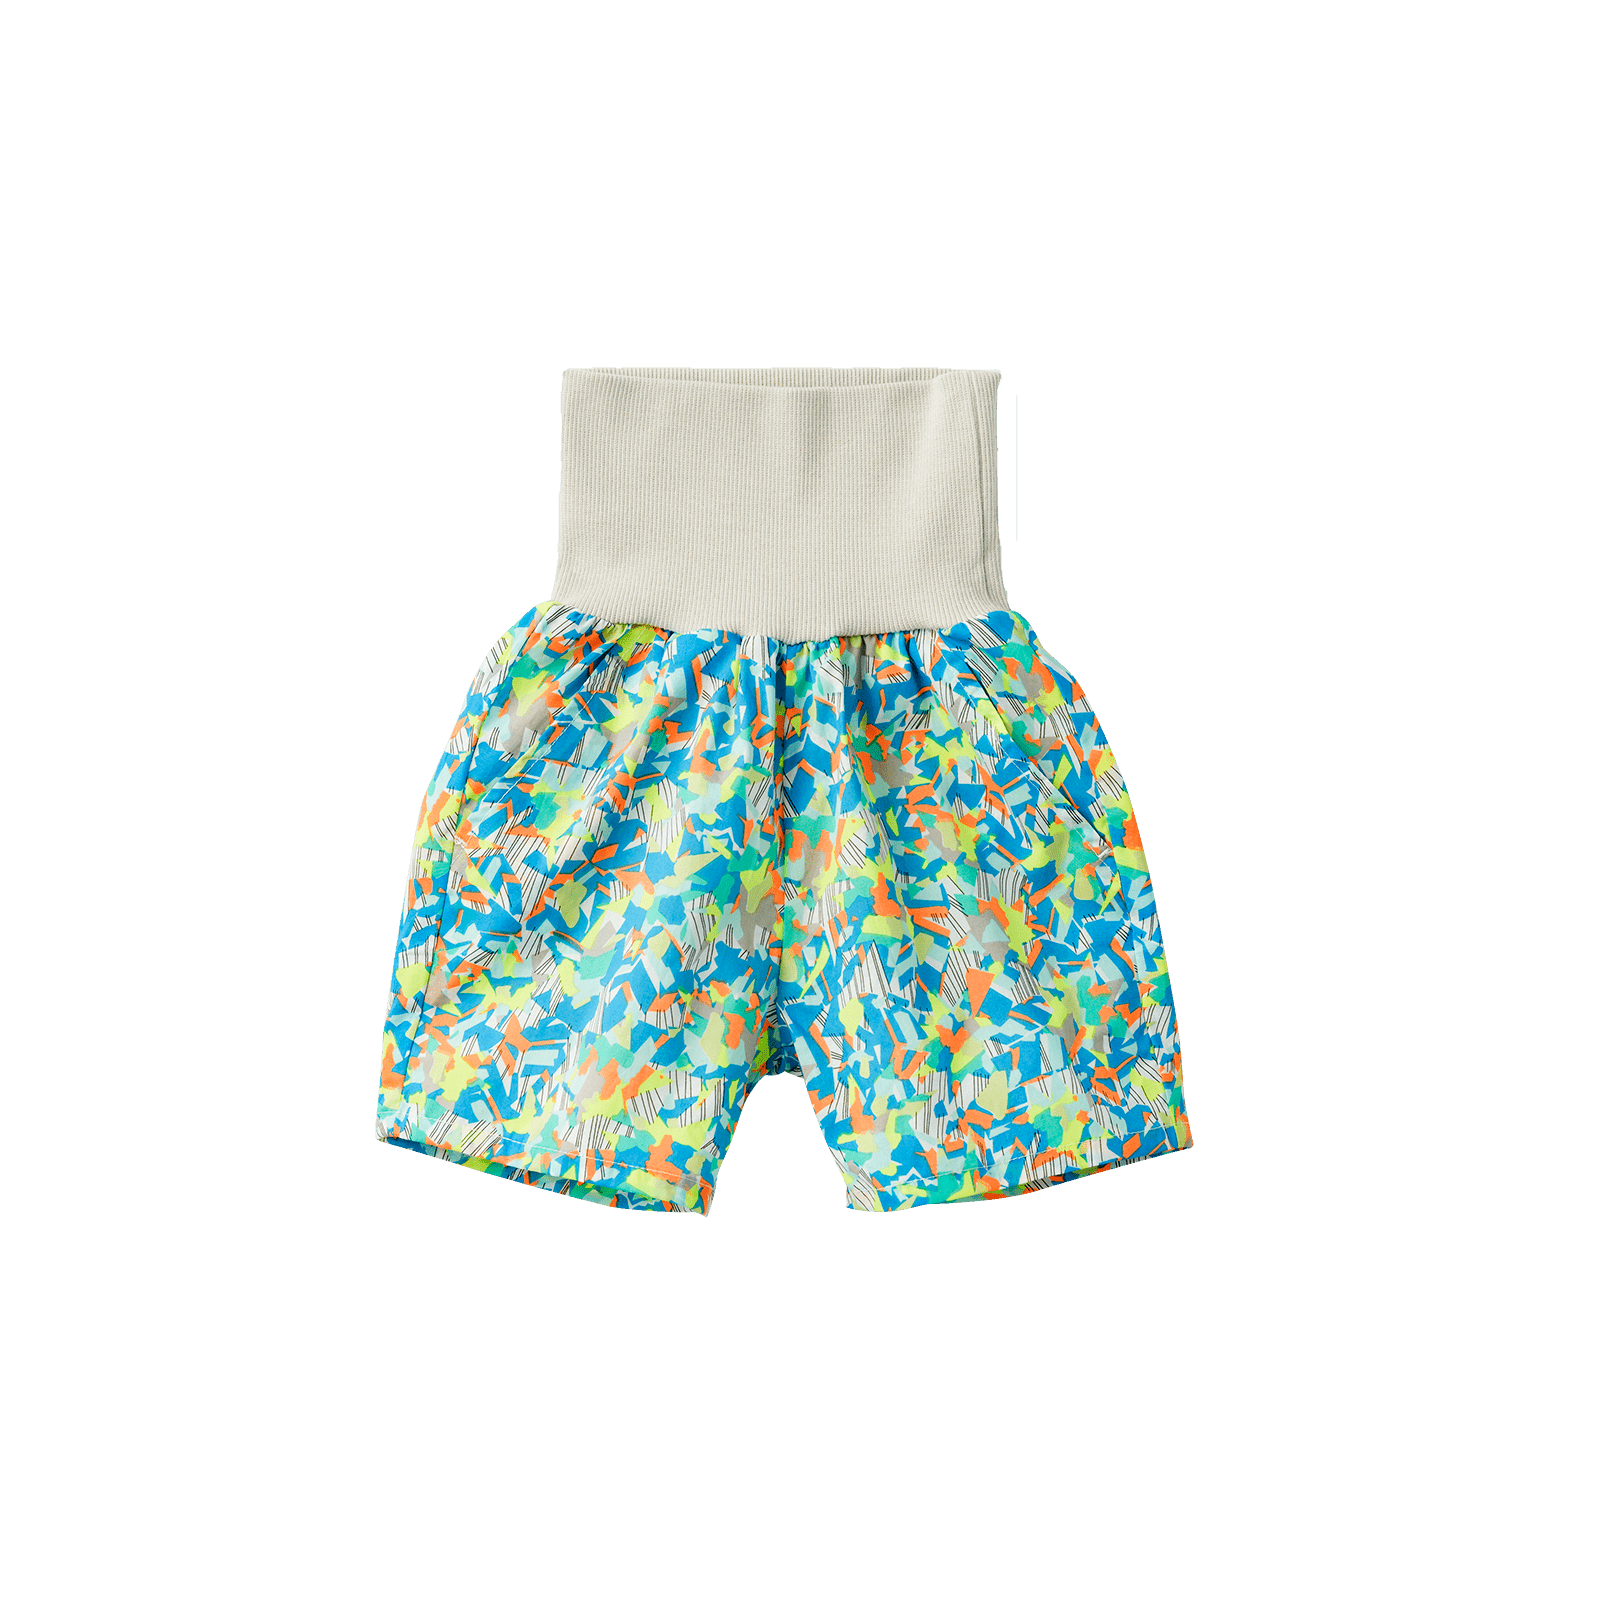 doudou shorts bluebonnet